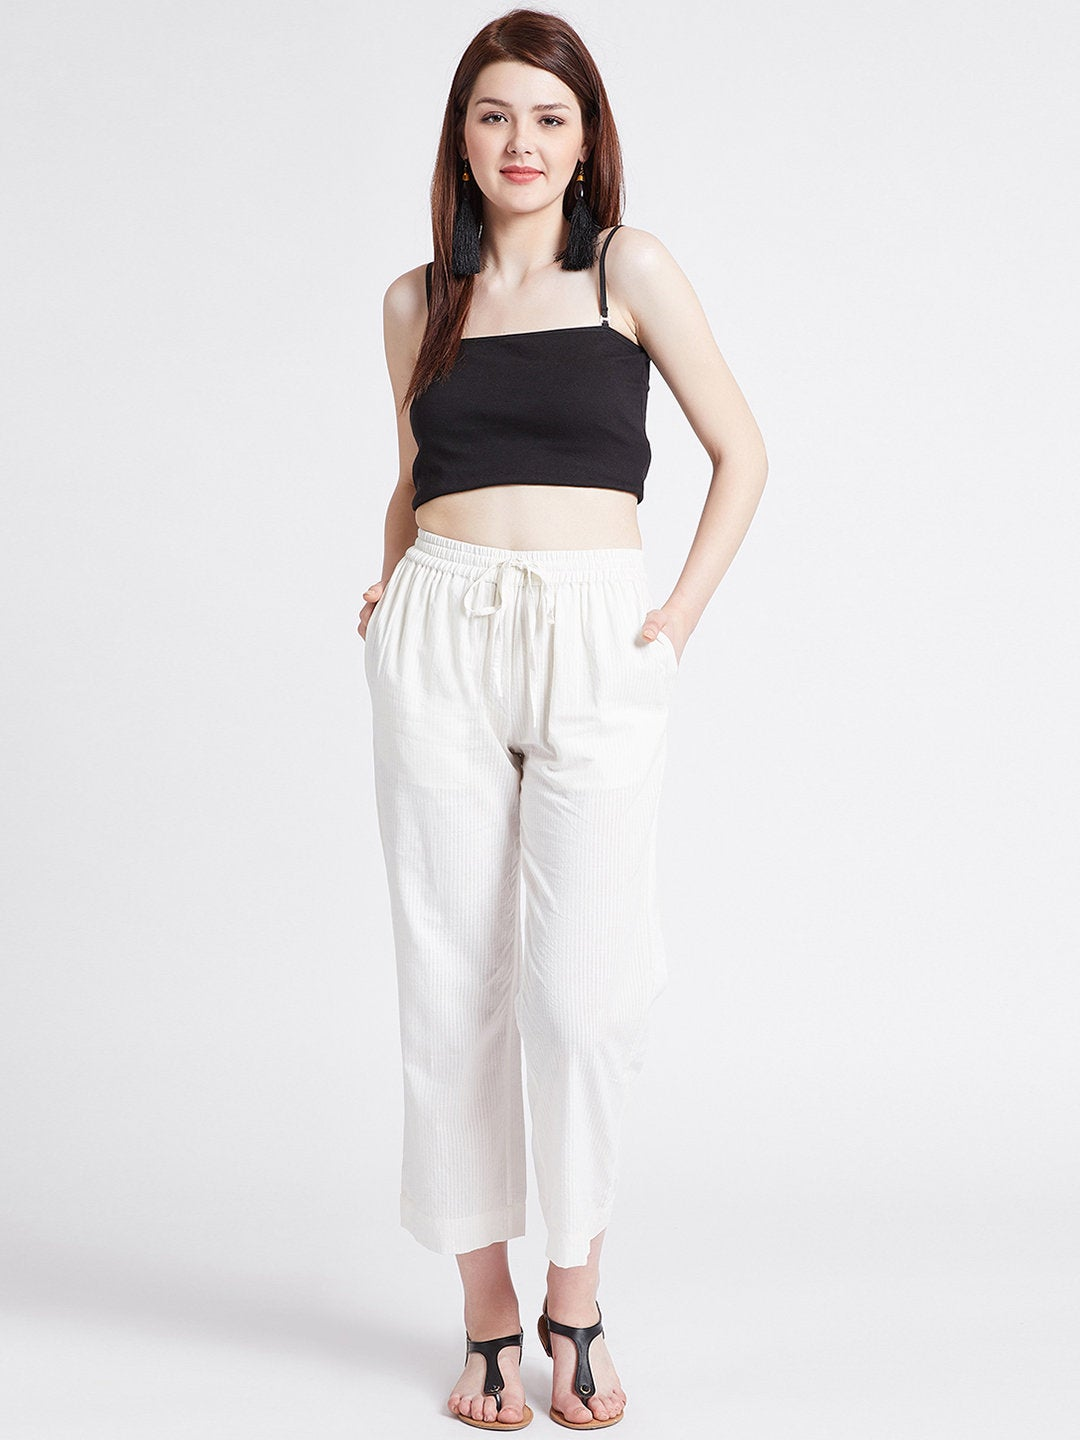 Off-white cotton straight pants with pockets